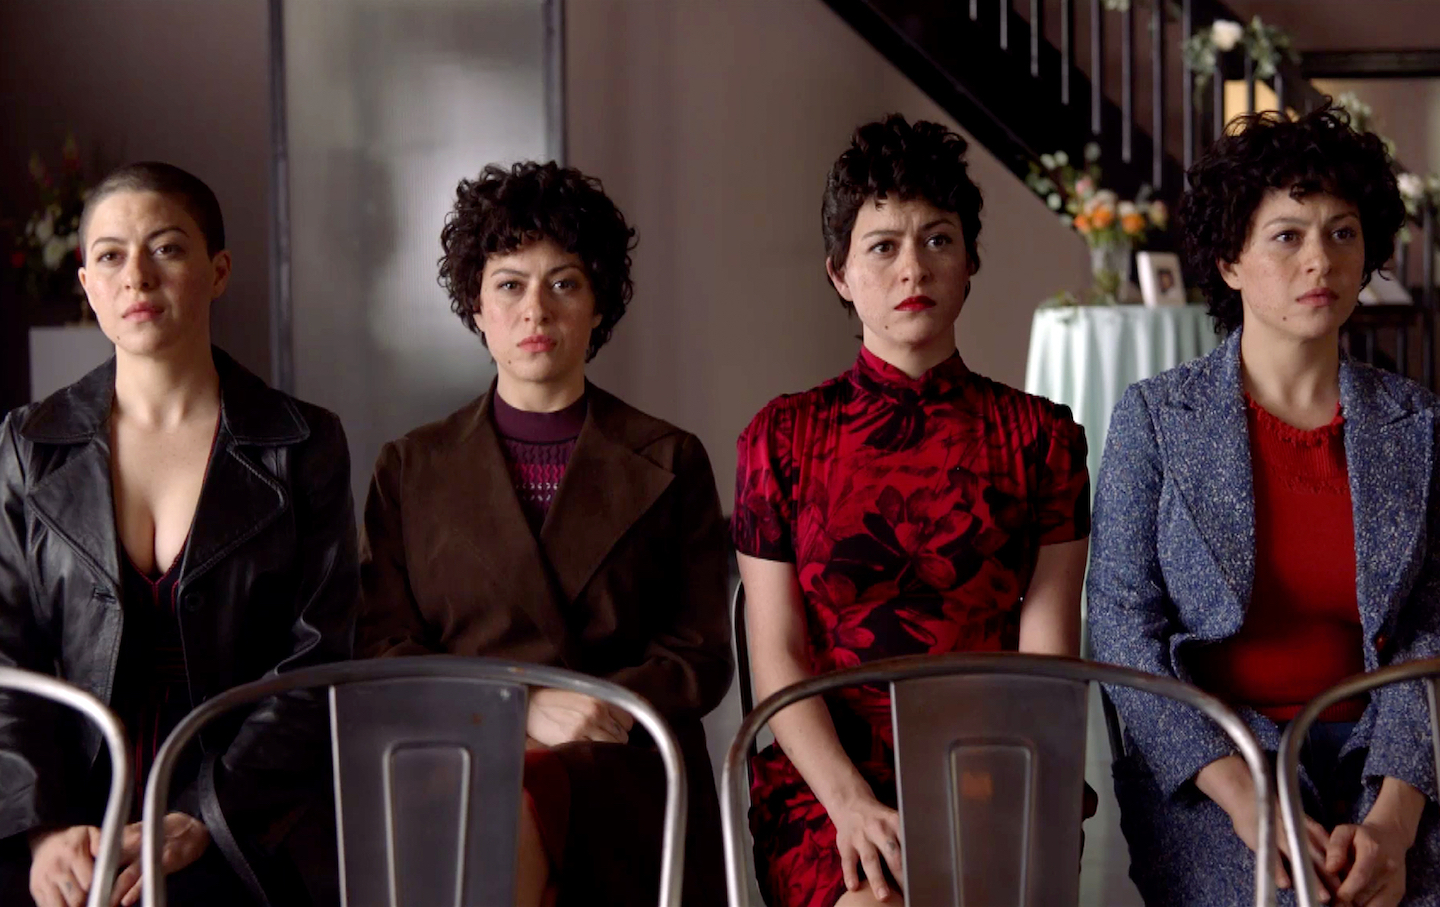 Alia Shawkat in 'Search Party'